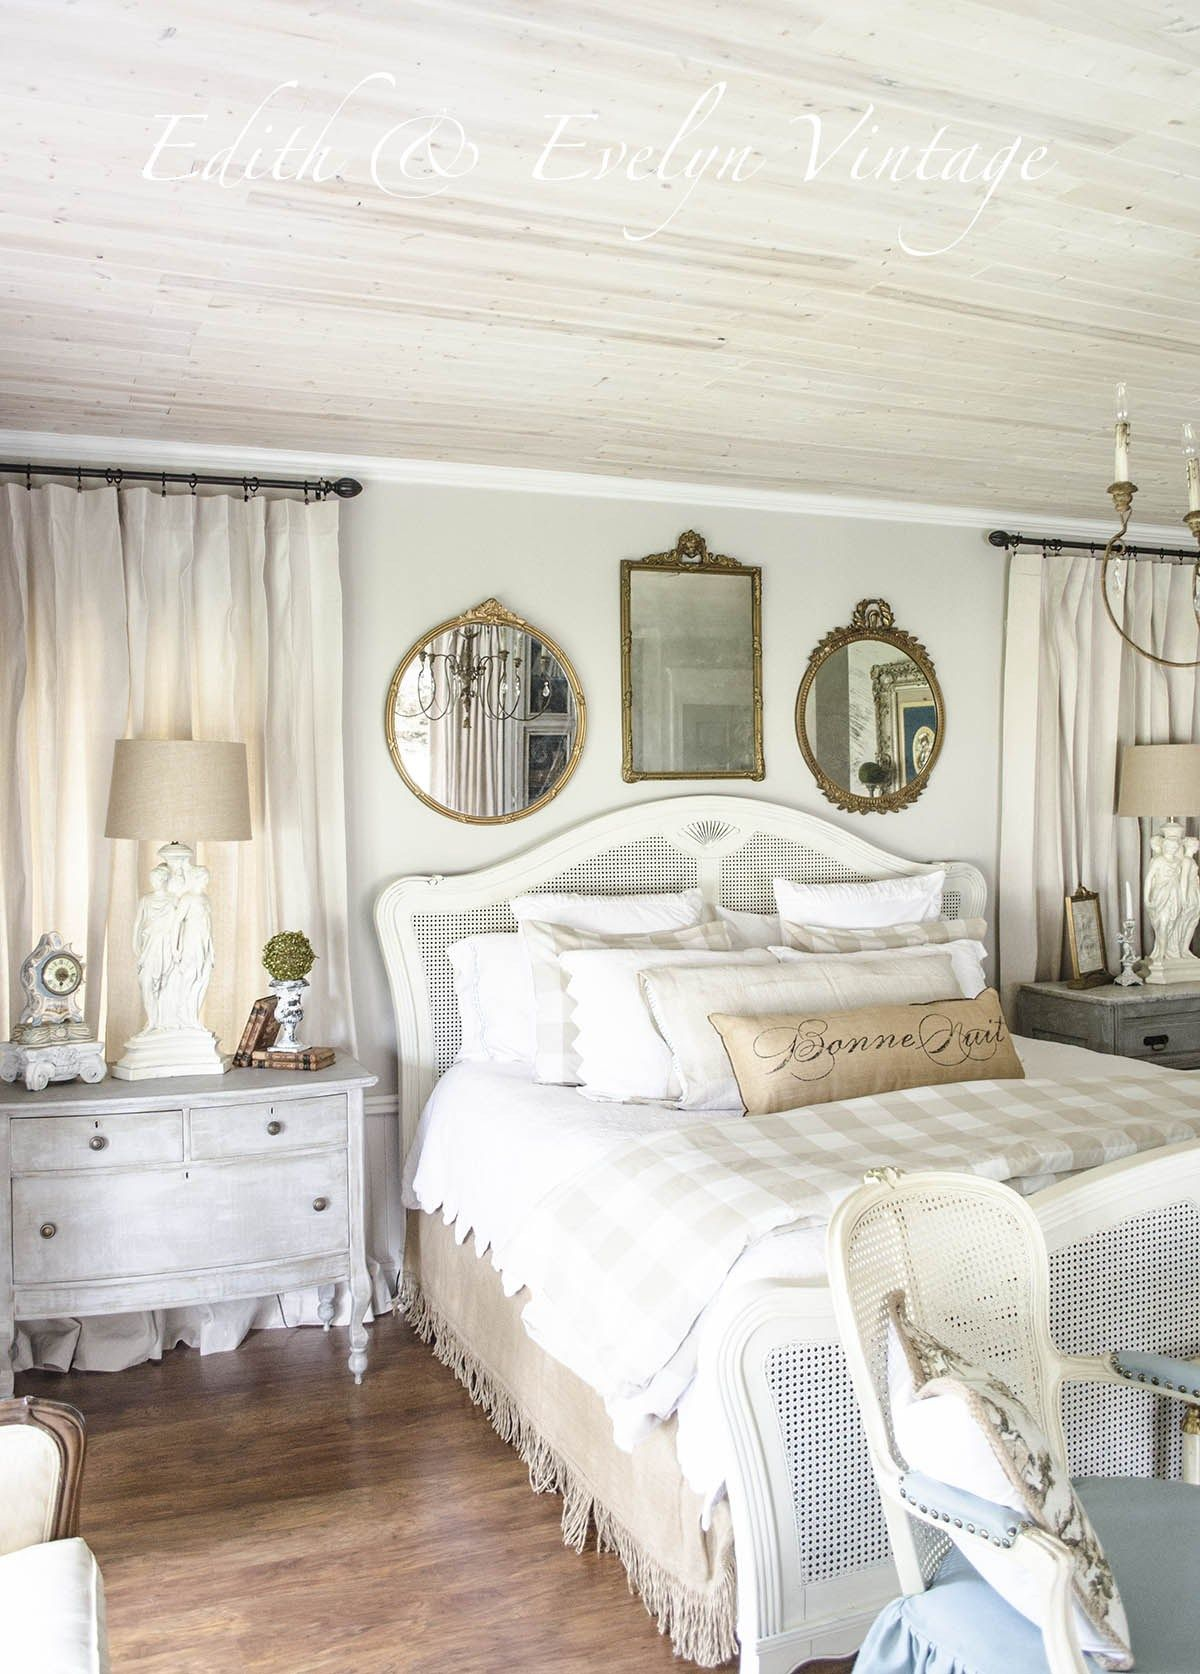 Transformation Country Bedroom Decor French Country Decorating